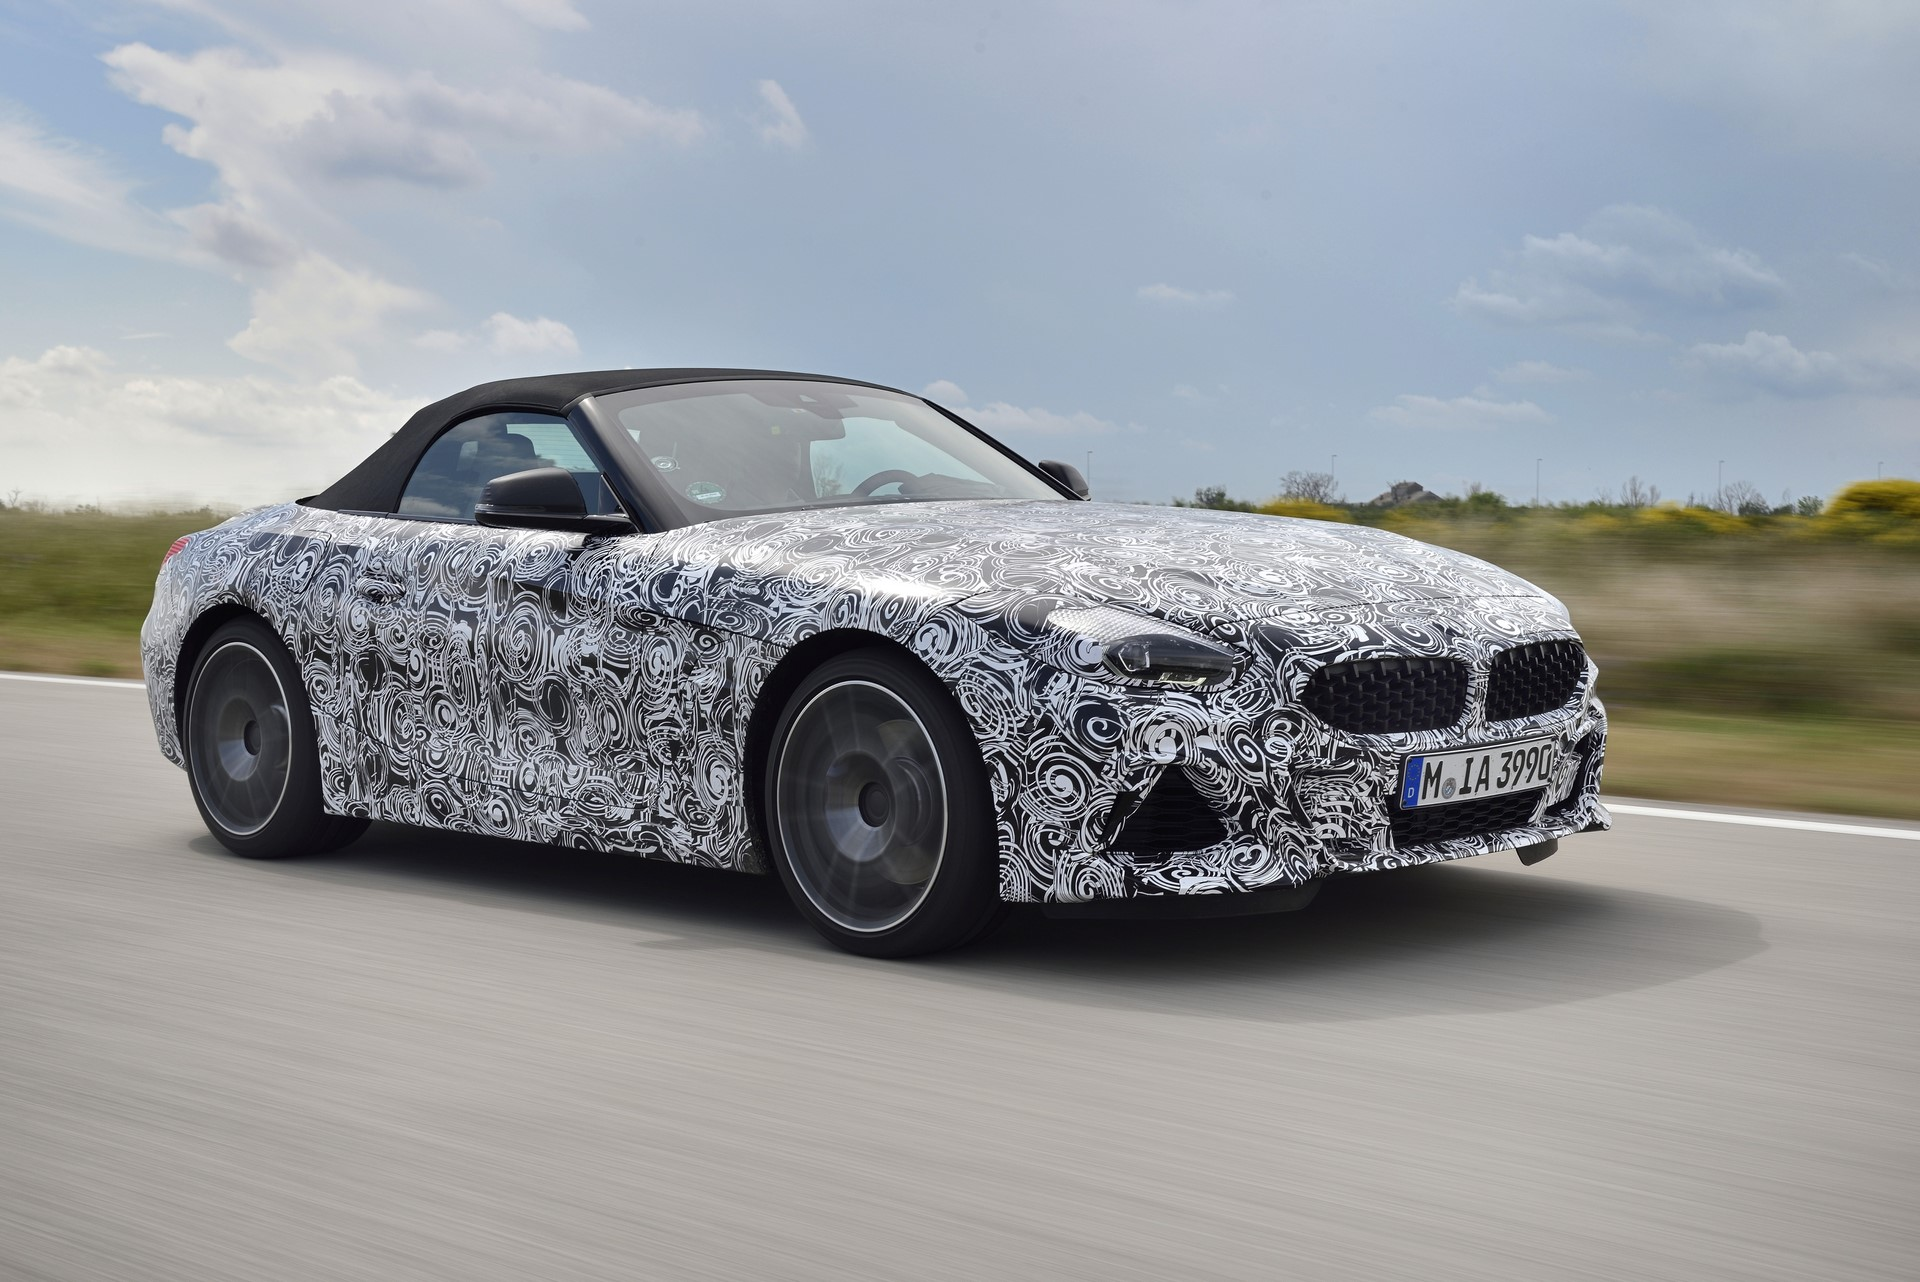 BMW Z4 M40i 2019 official spy photos (25)